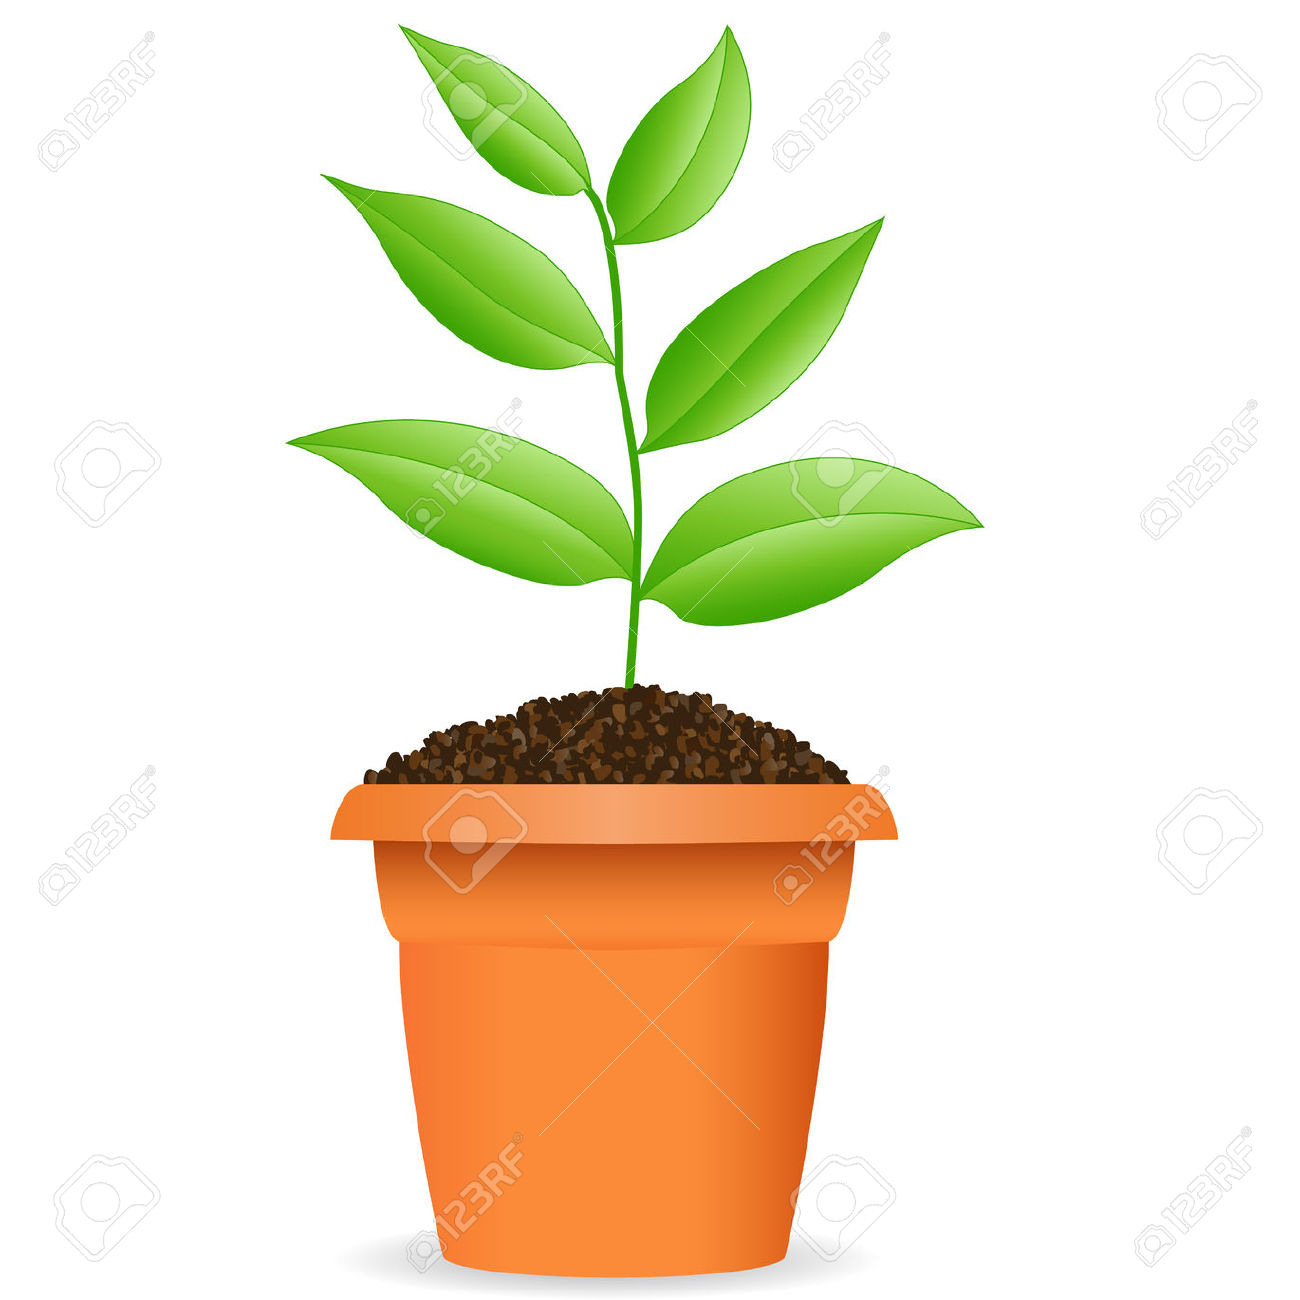 Drawn pot plant clipart For Plant Full Emoji A